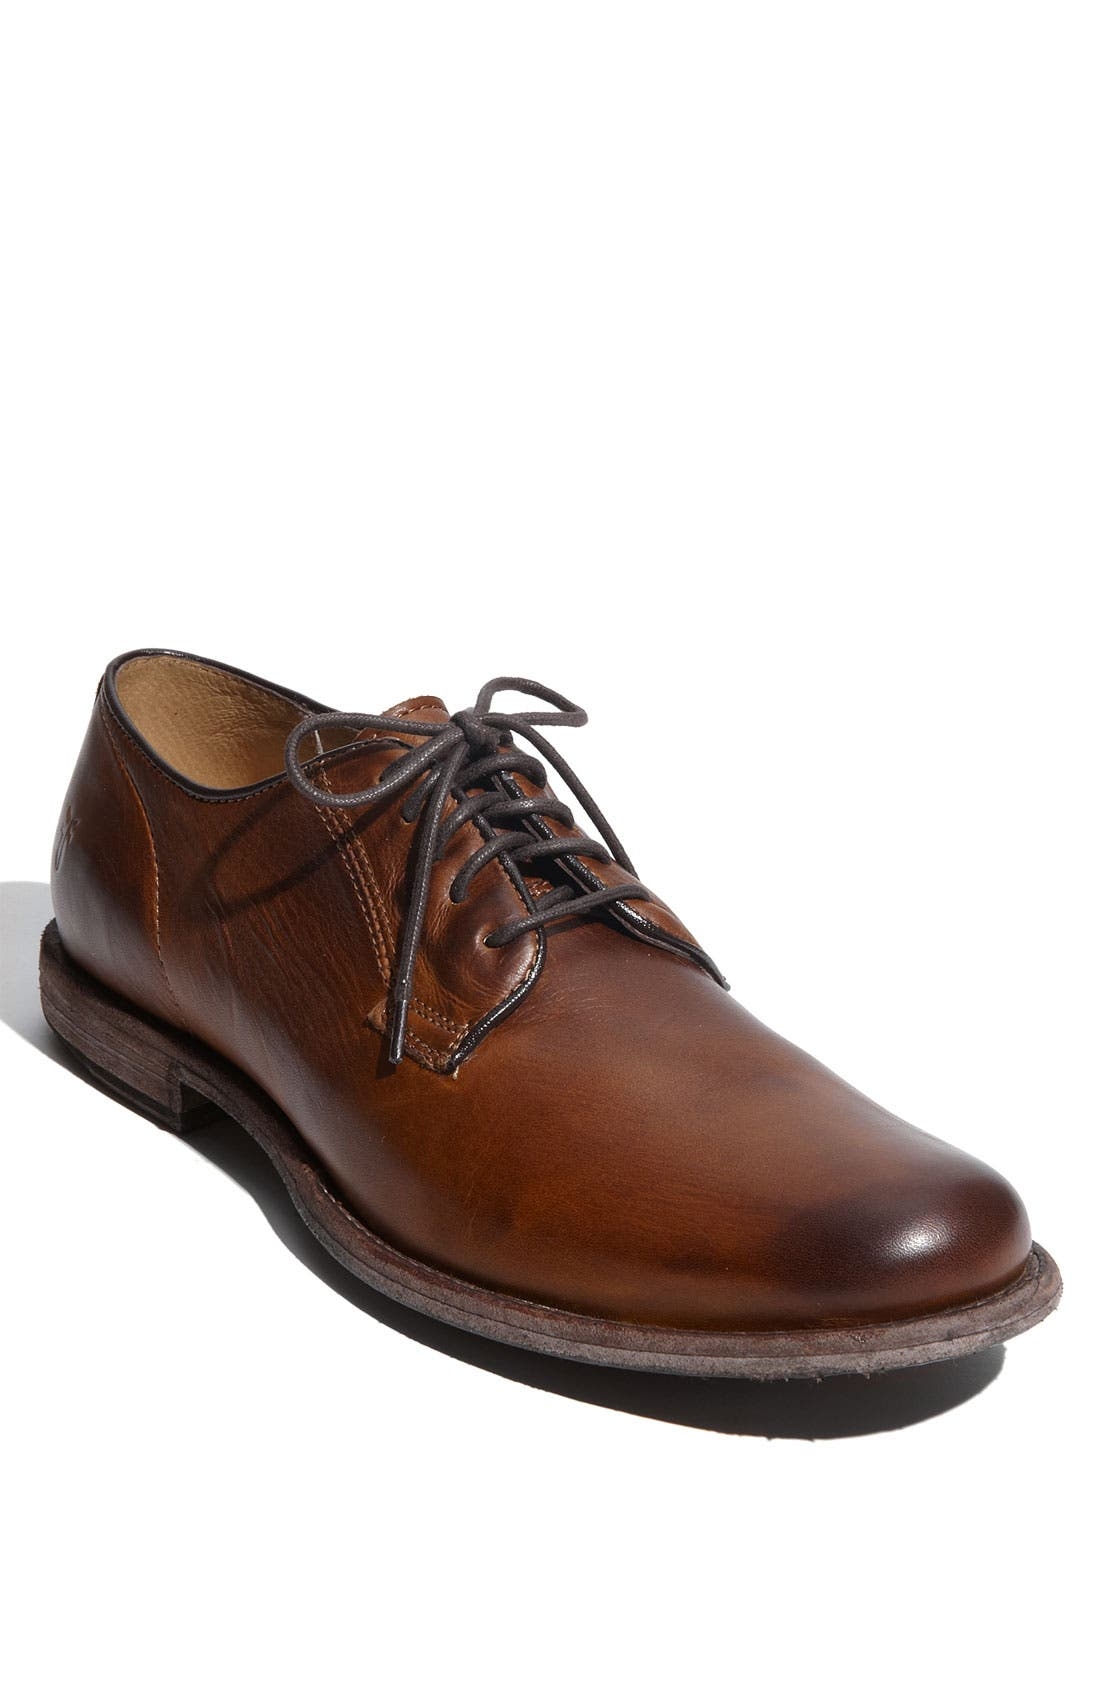 Alternate Image 1 Selected - Frye 'Phillip' Oxford